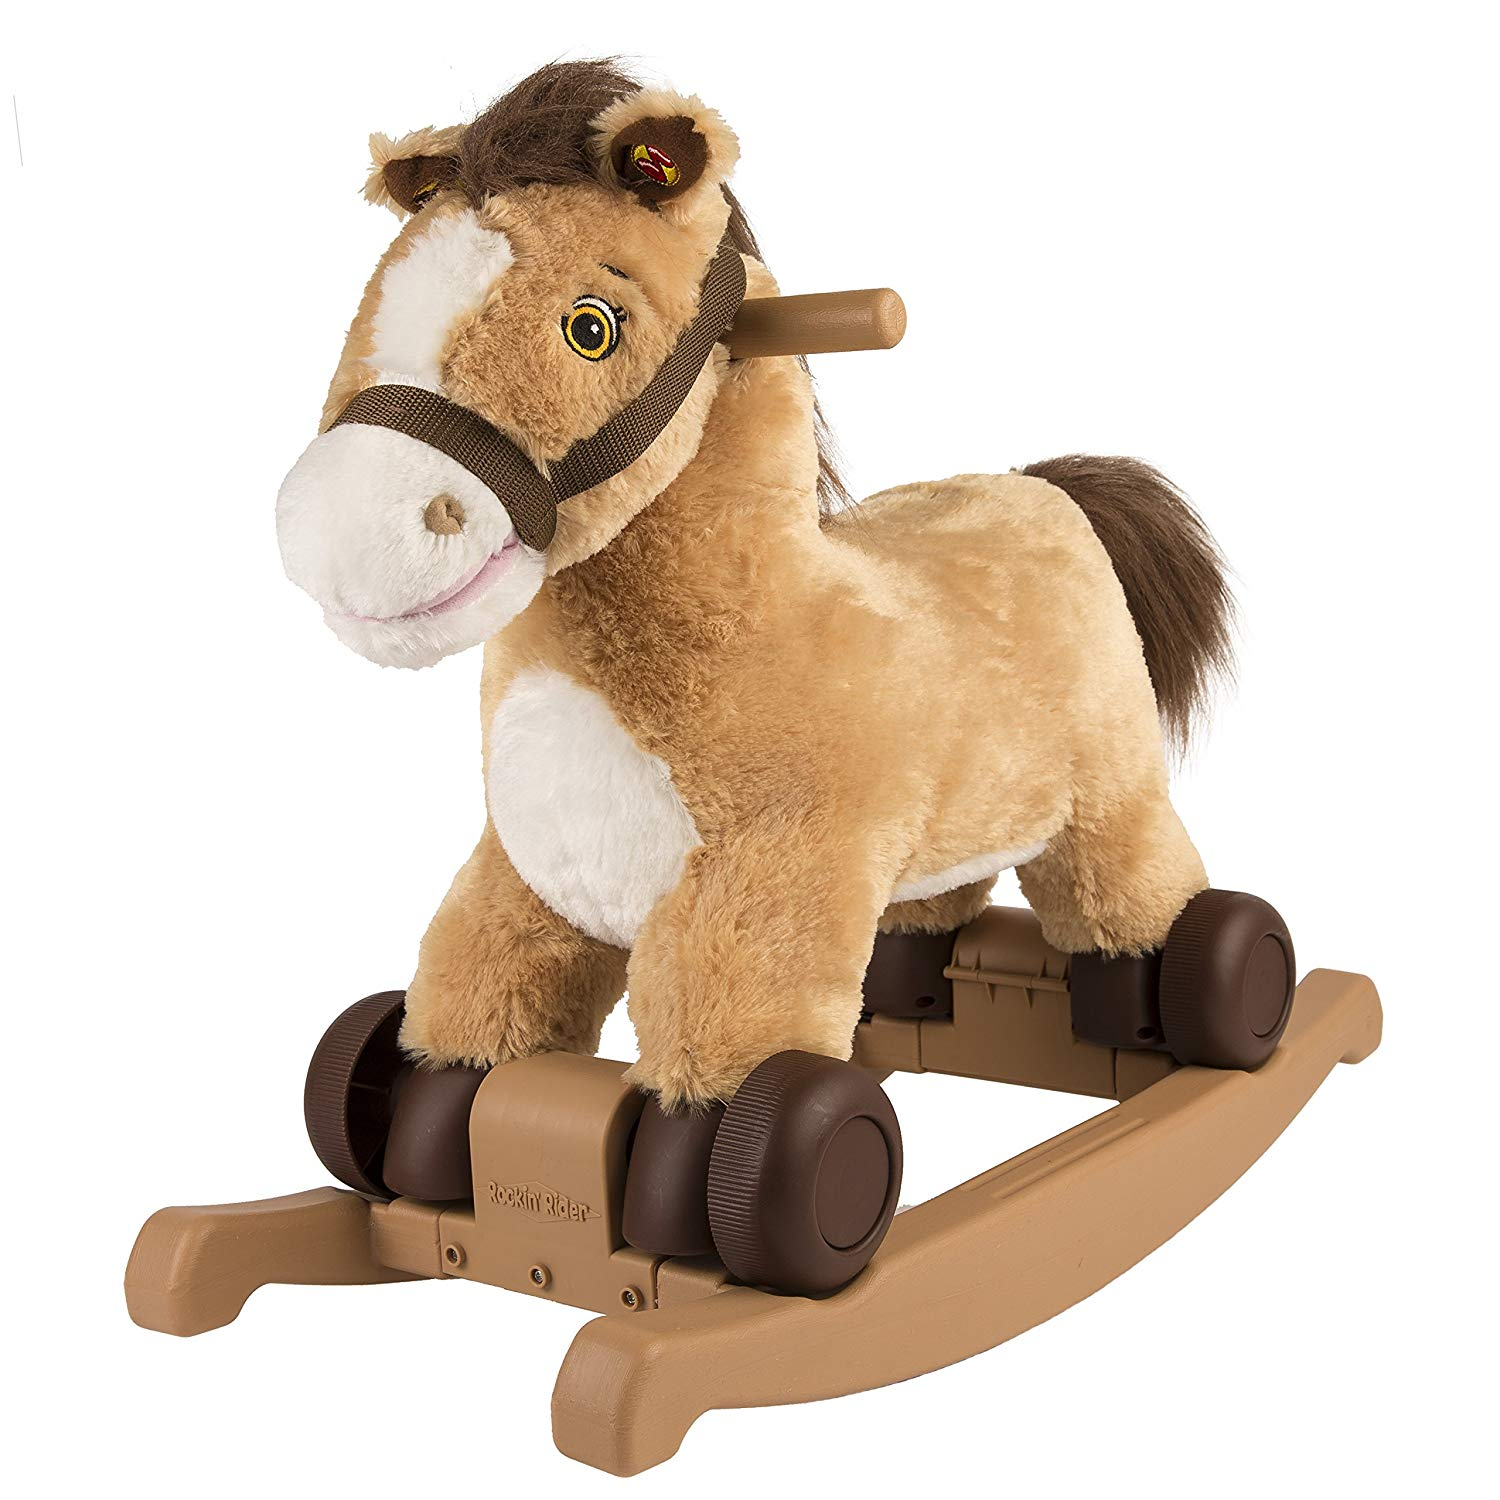 Rockin' Rider Charger 2-in-1 Pony Ride-On.